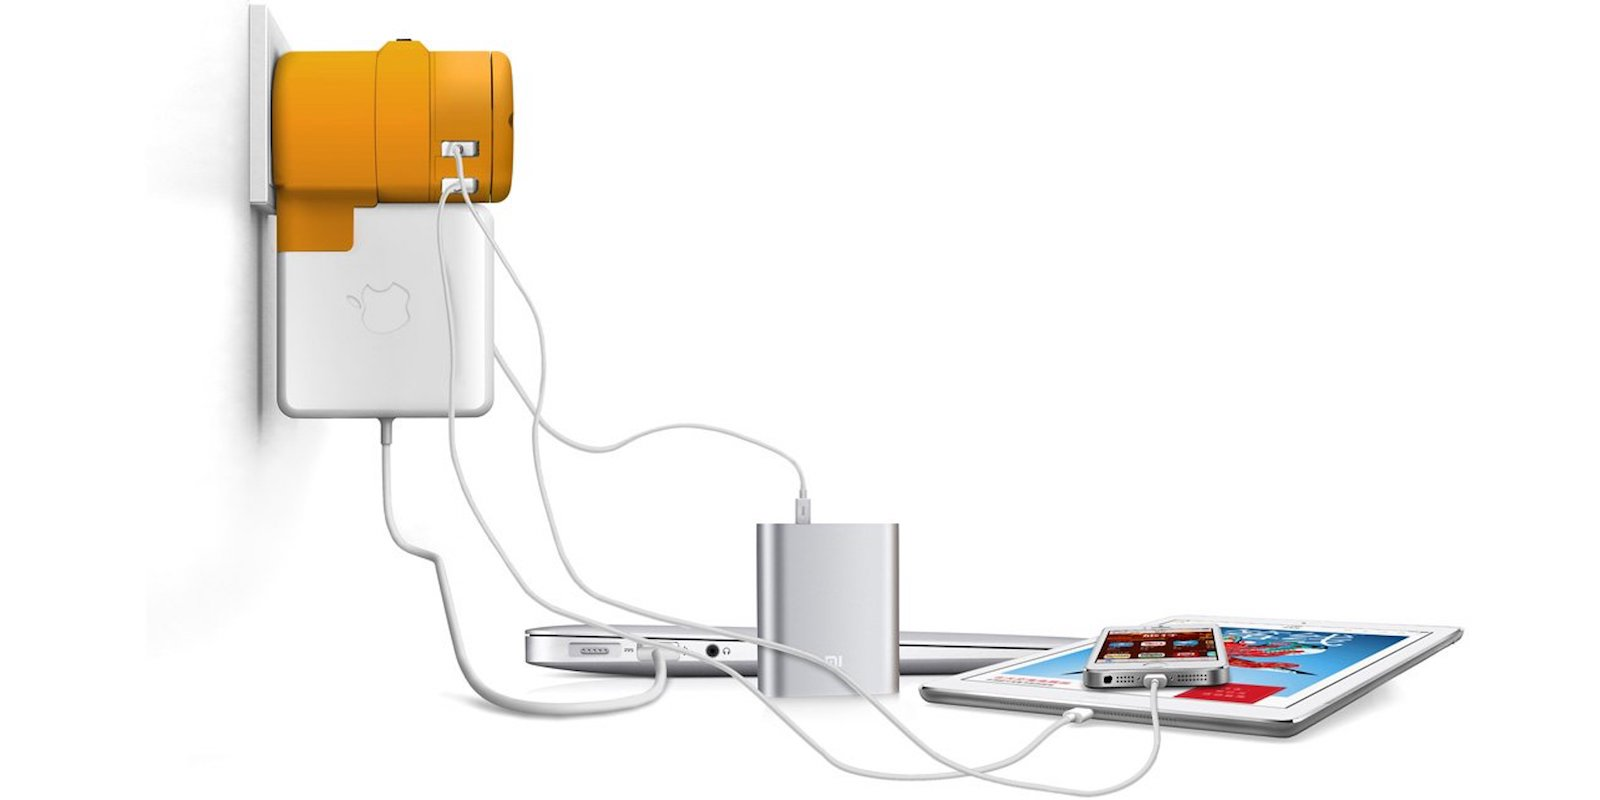 With one compact international charging hub, you can revive up to 5 devices anywhere in the world.